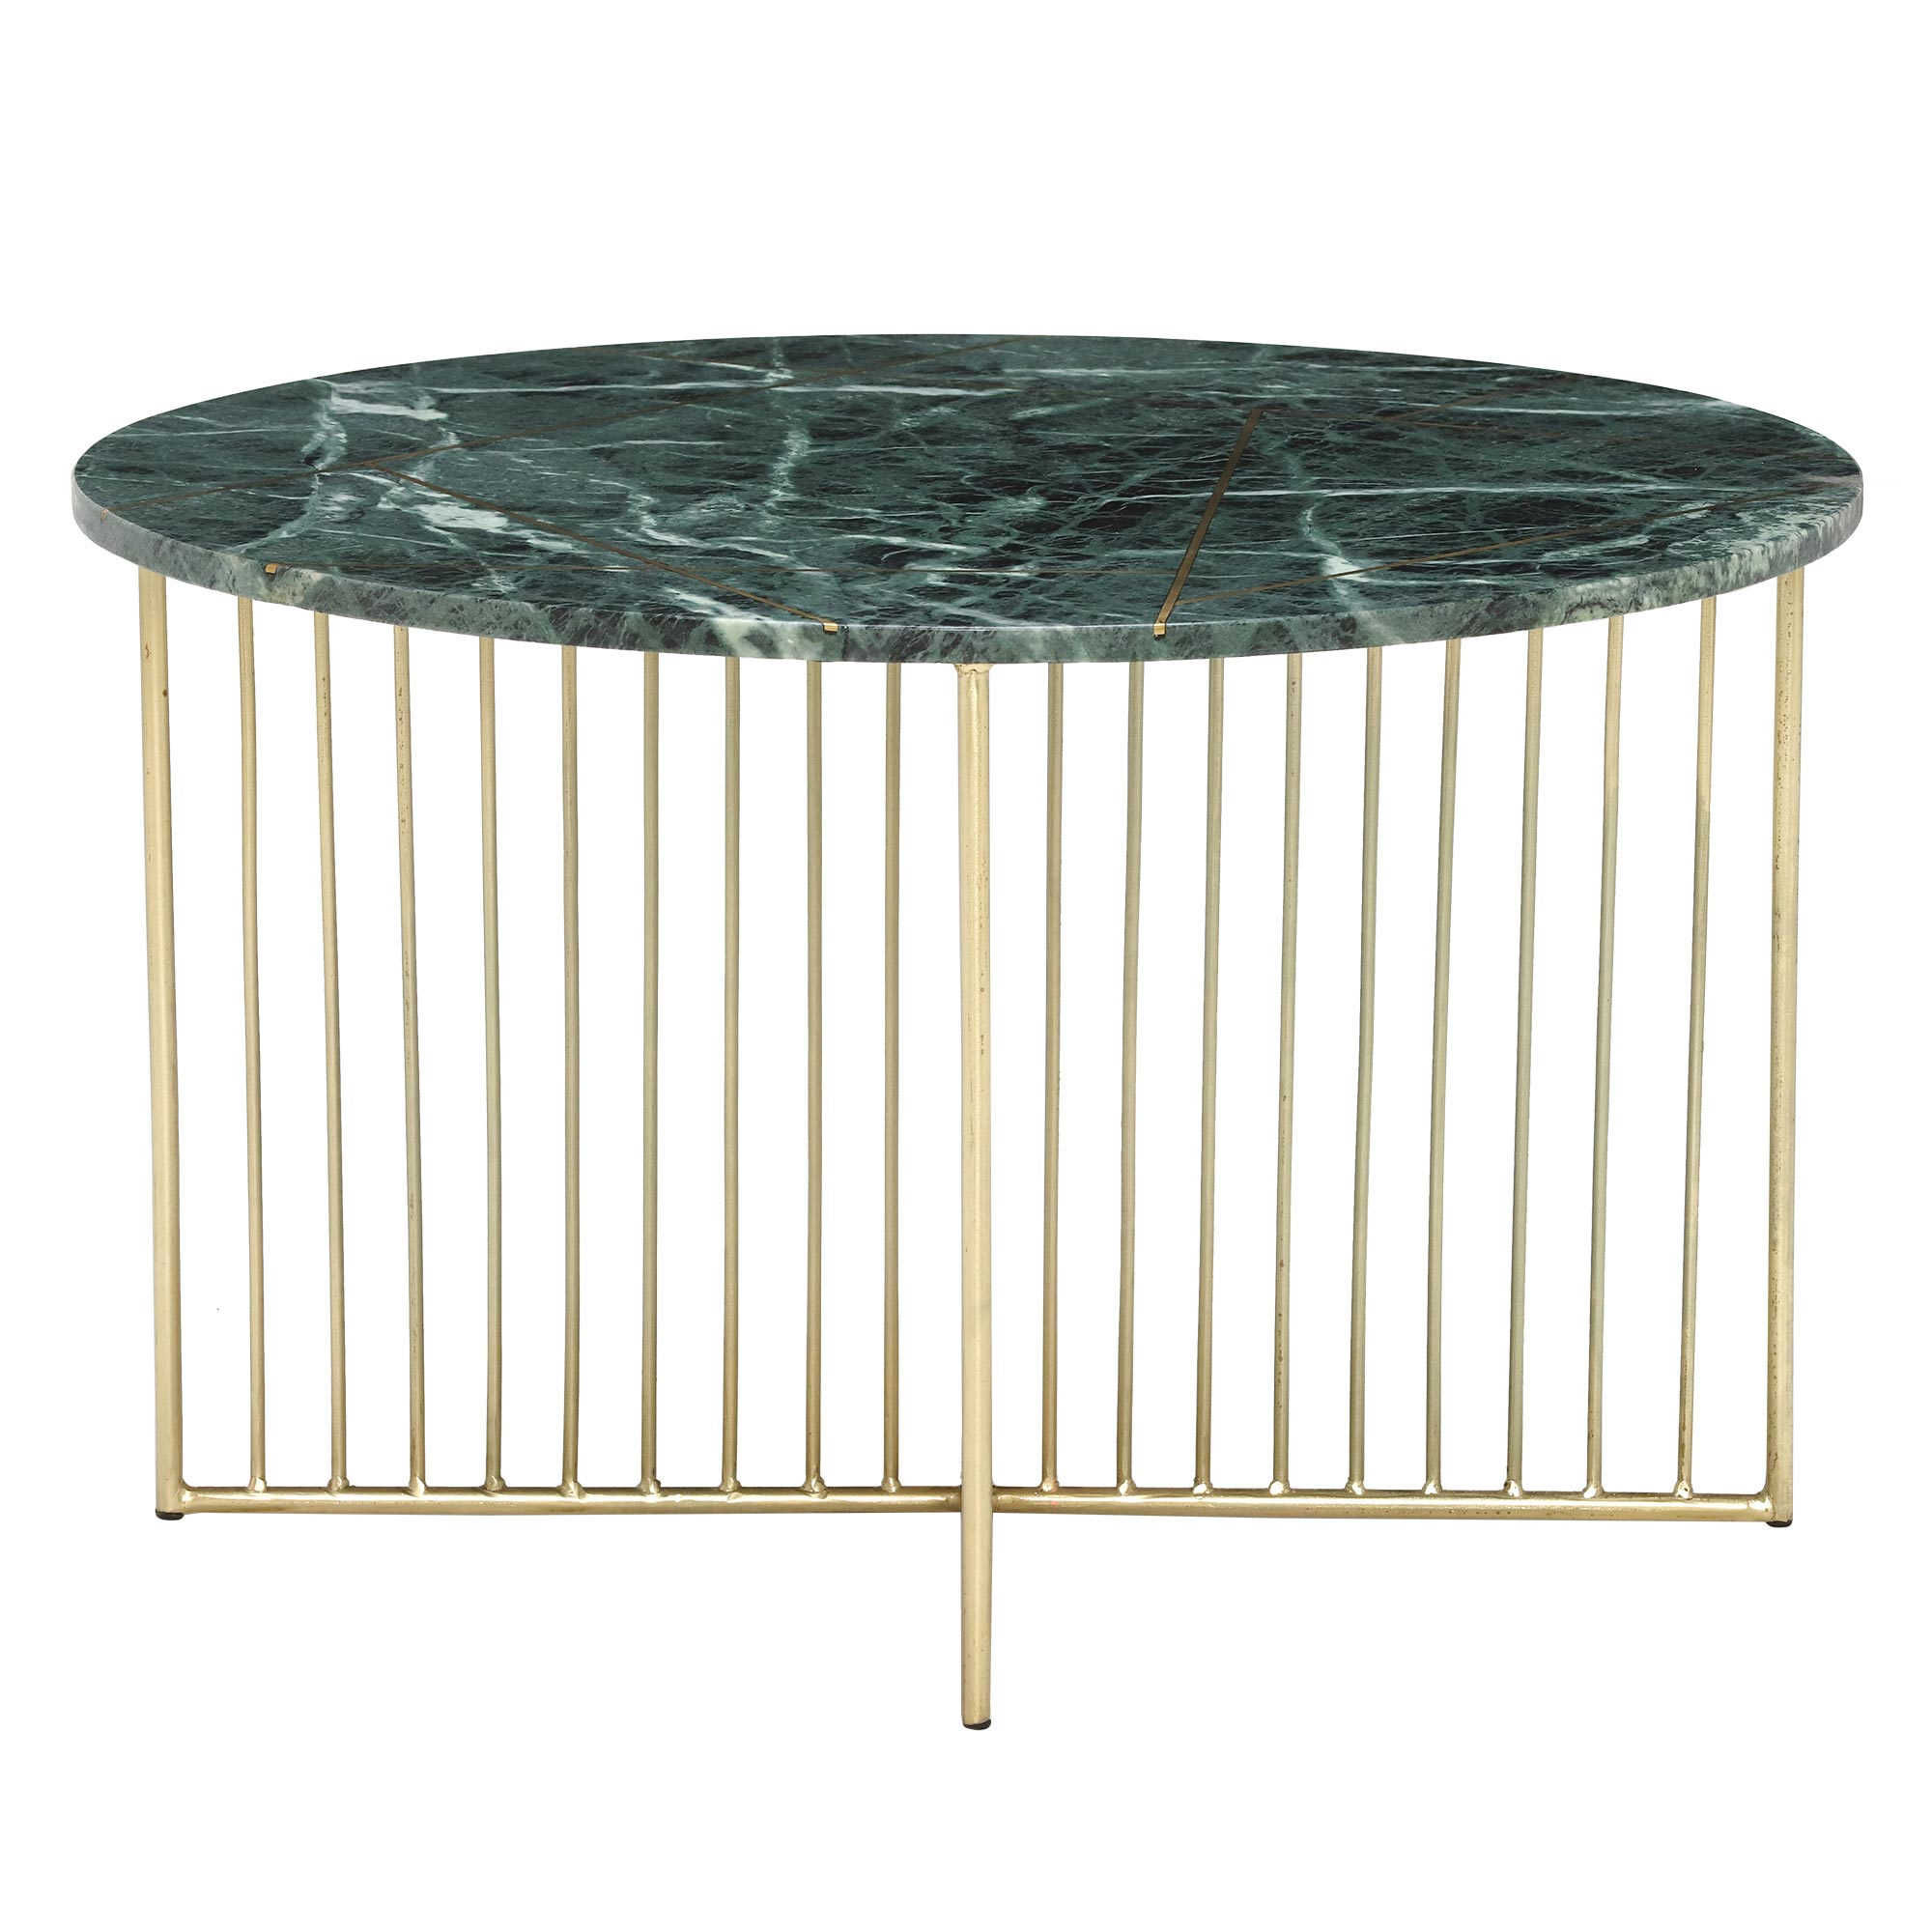 INSIGNIA COFFEE TABLE - SIDE DETAIL